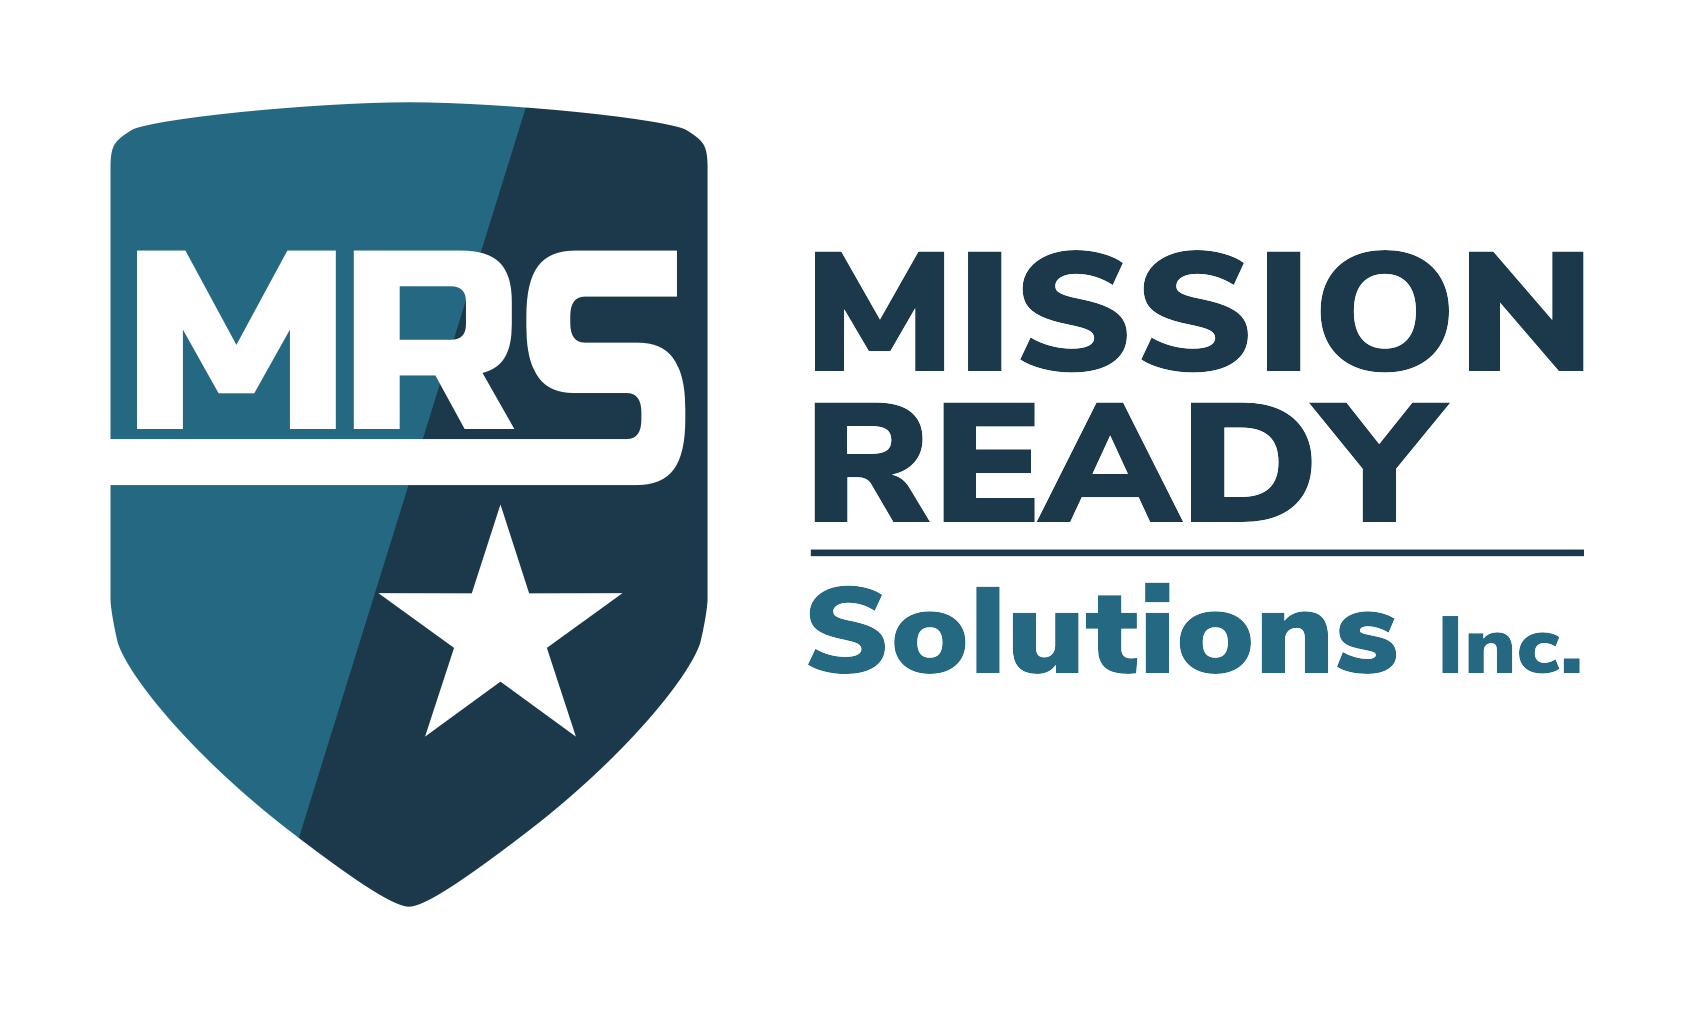 Mission Ready Responds to Increased Market Activity